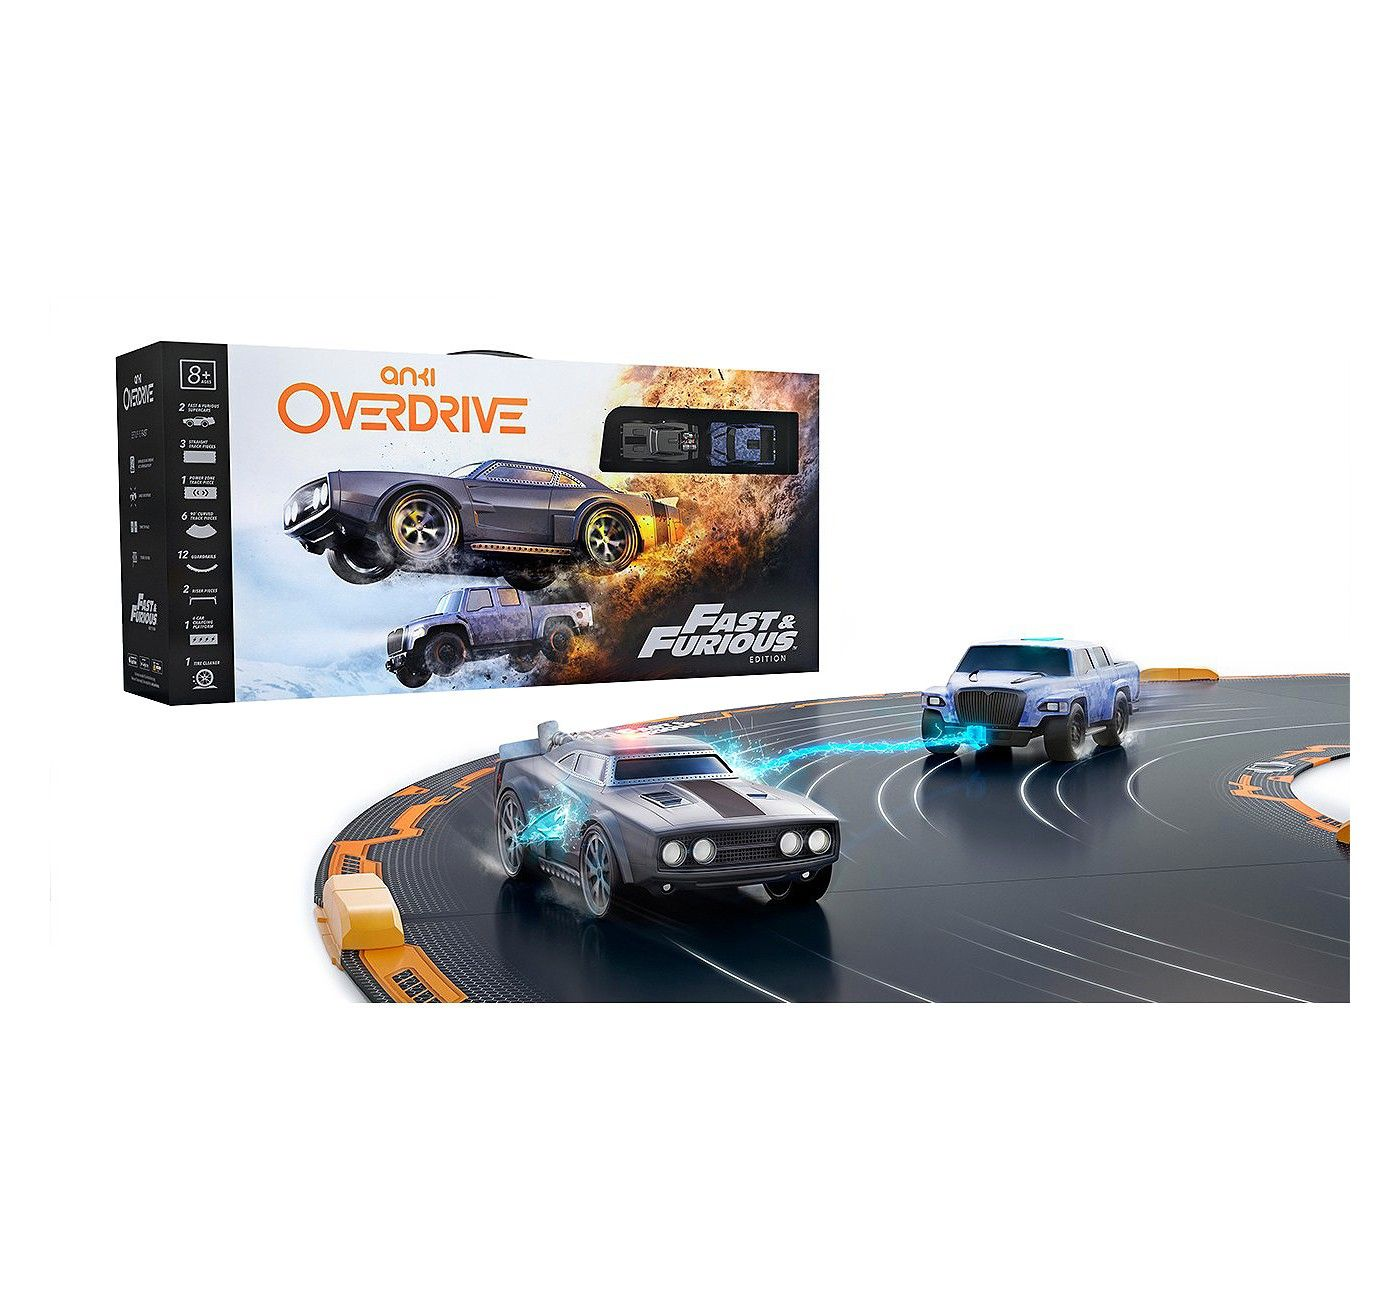 Anki OVERDRIVE Fast Fast and furious, Super cars